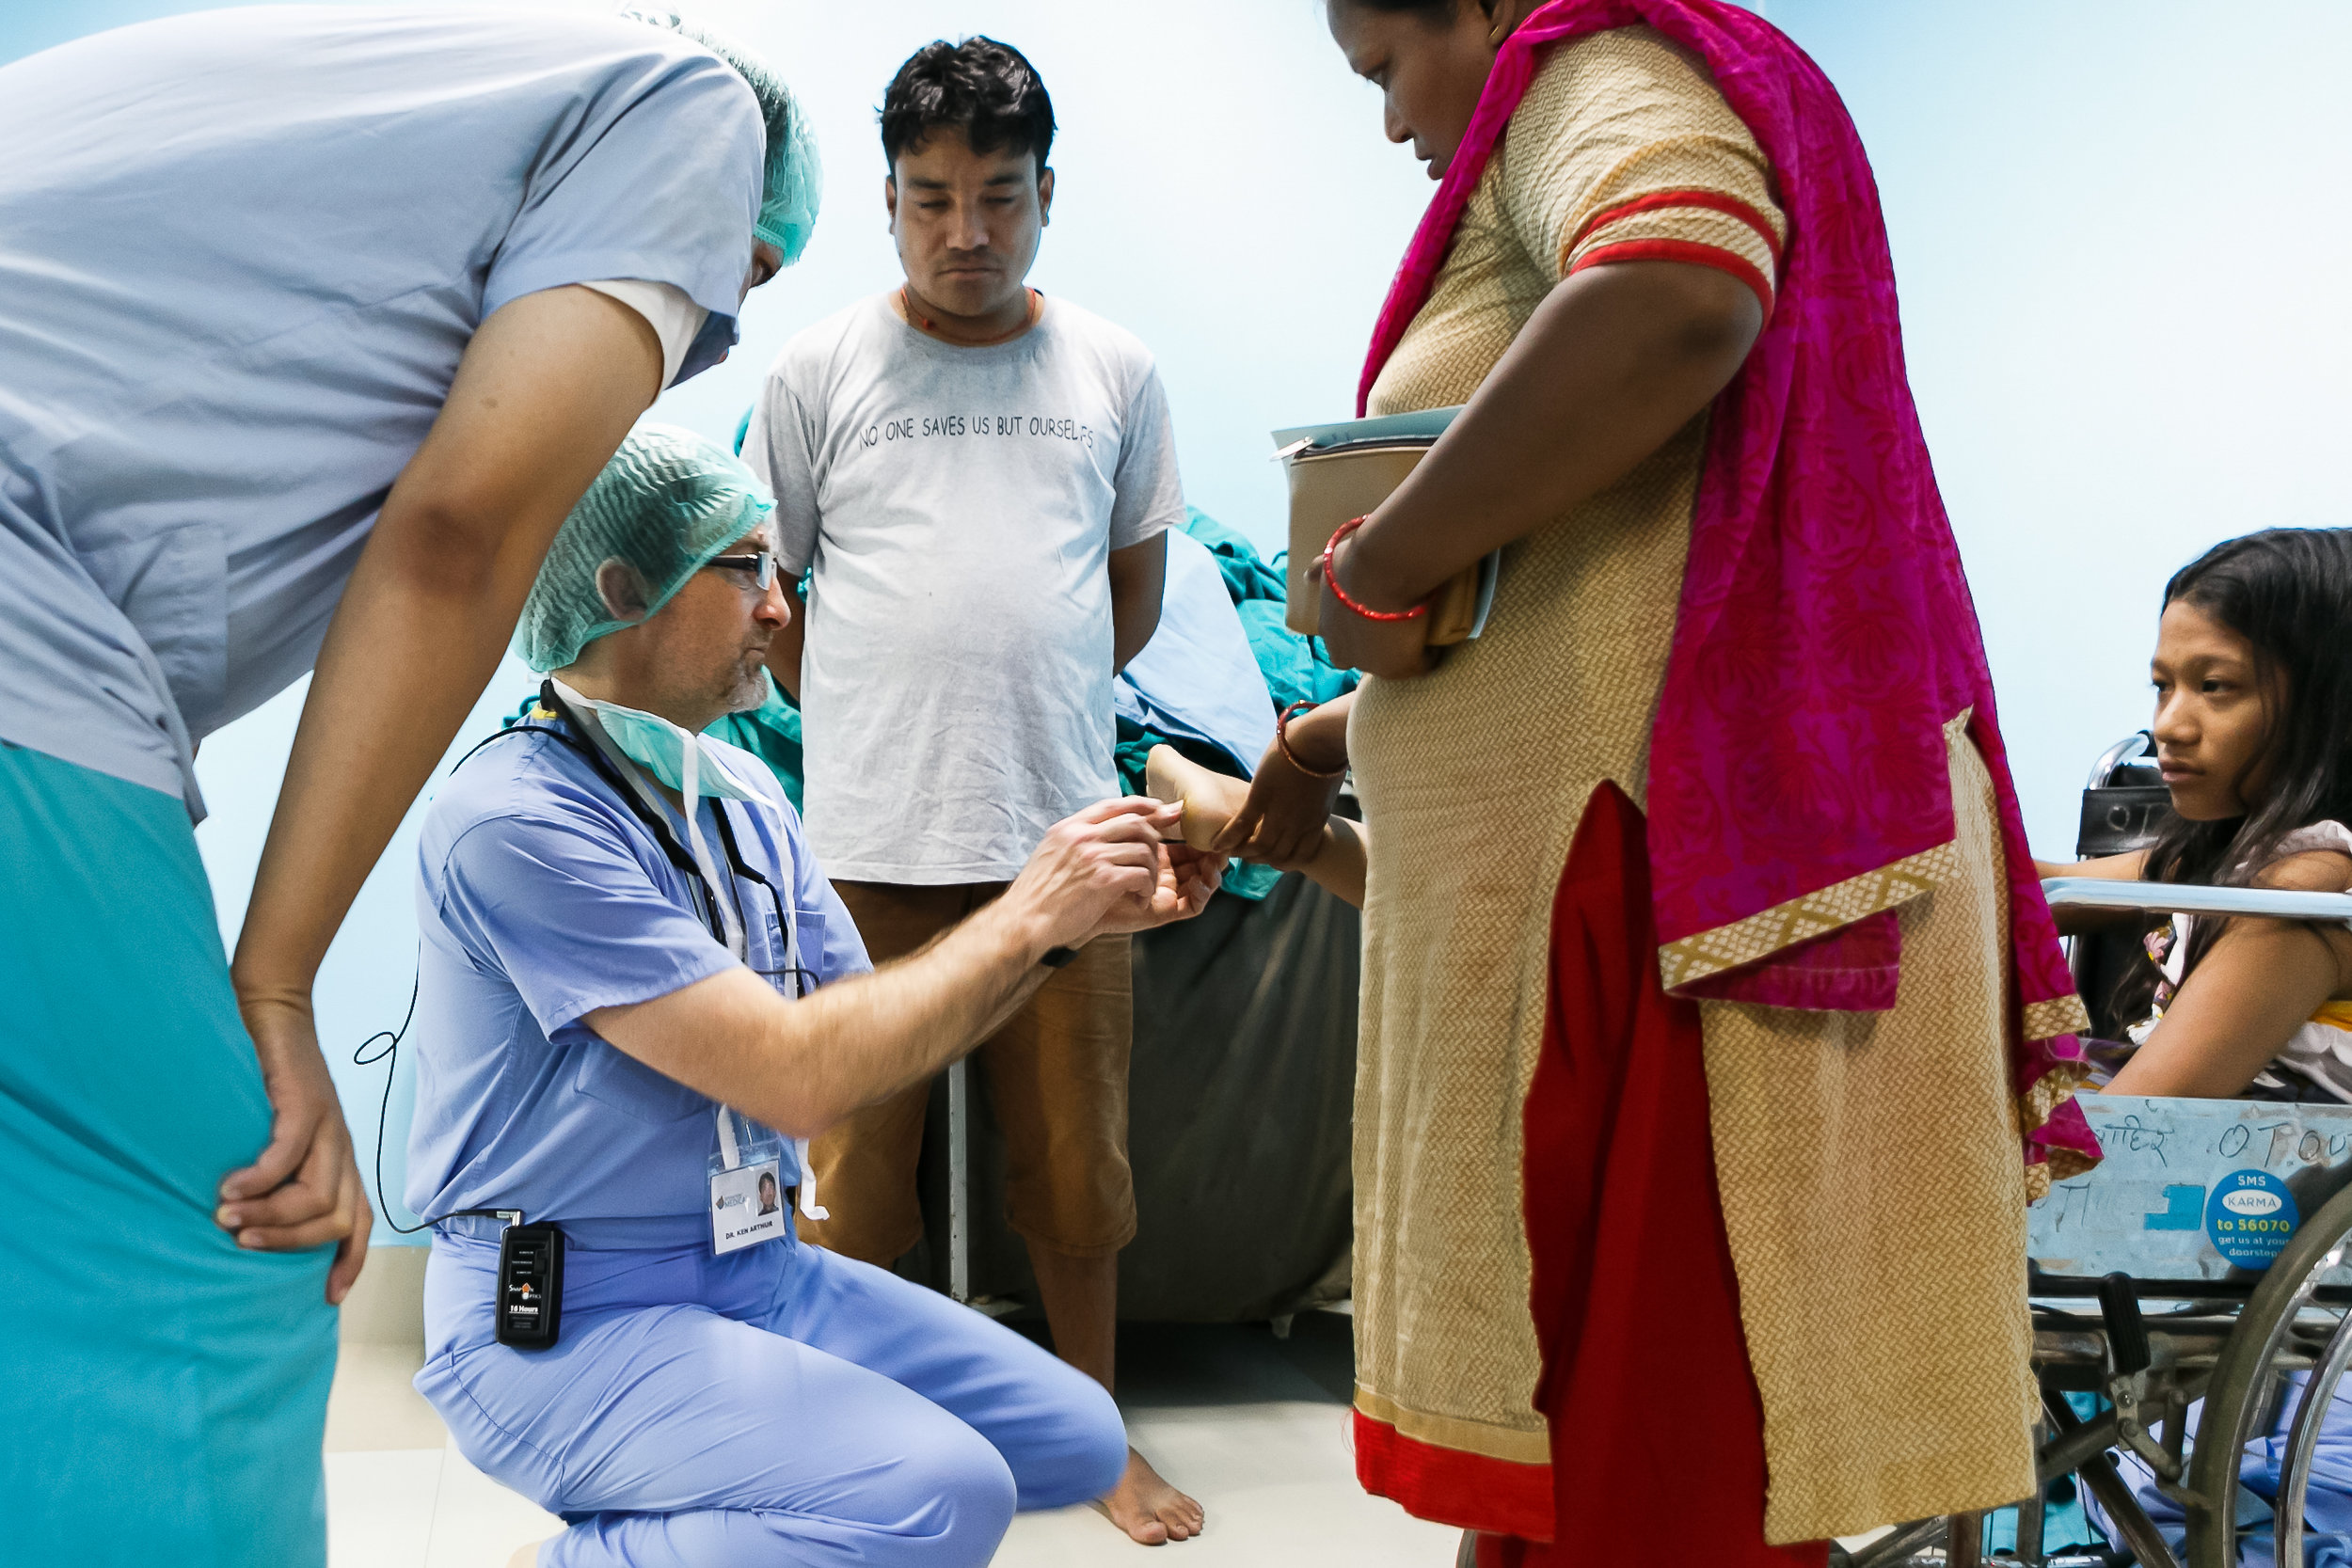 Volunteer doctors and nurses in Medical Mission to Nepal